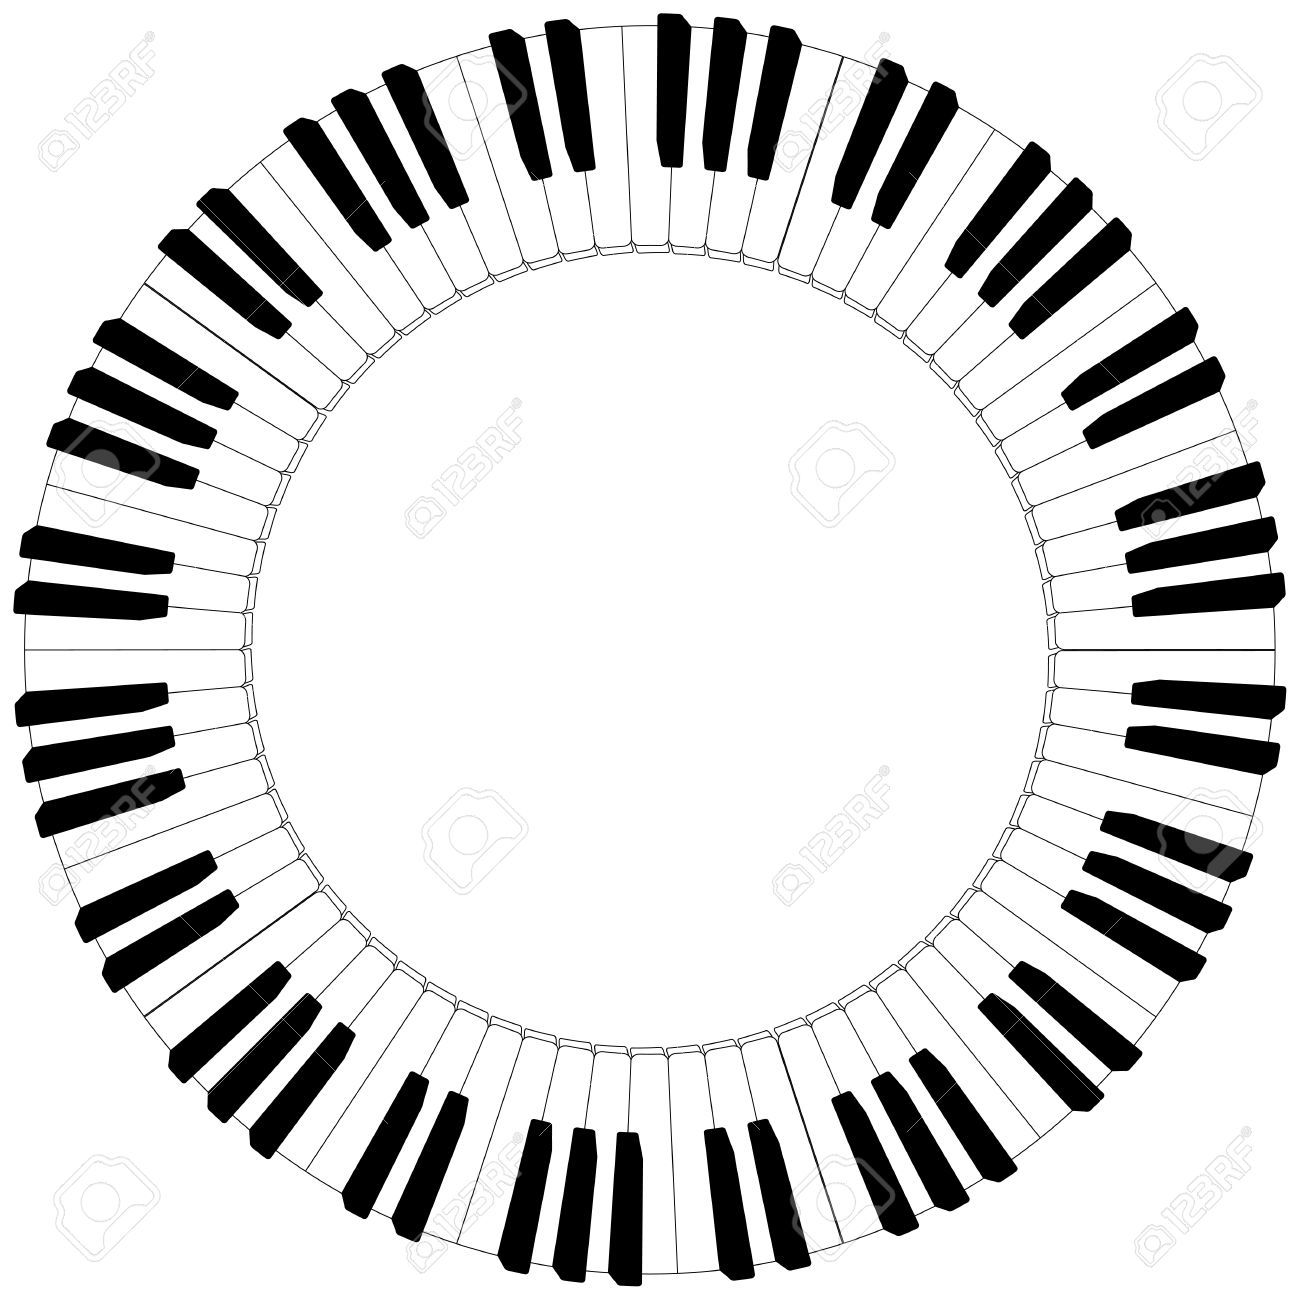 Round Piano Keyboard Frame In Black And White